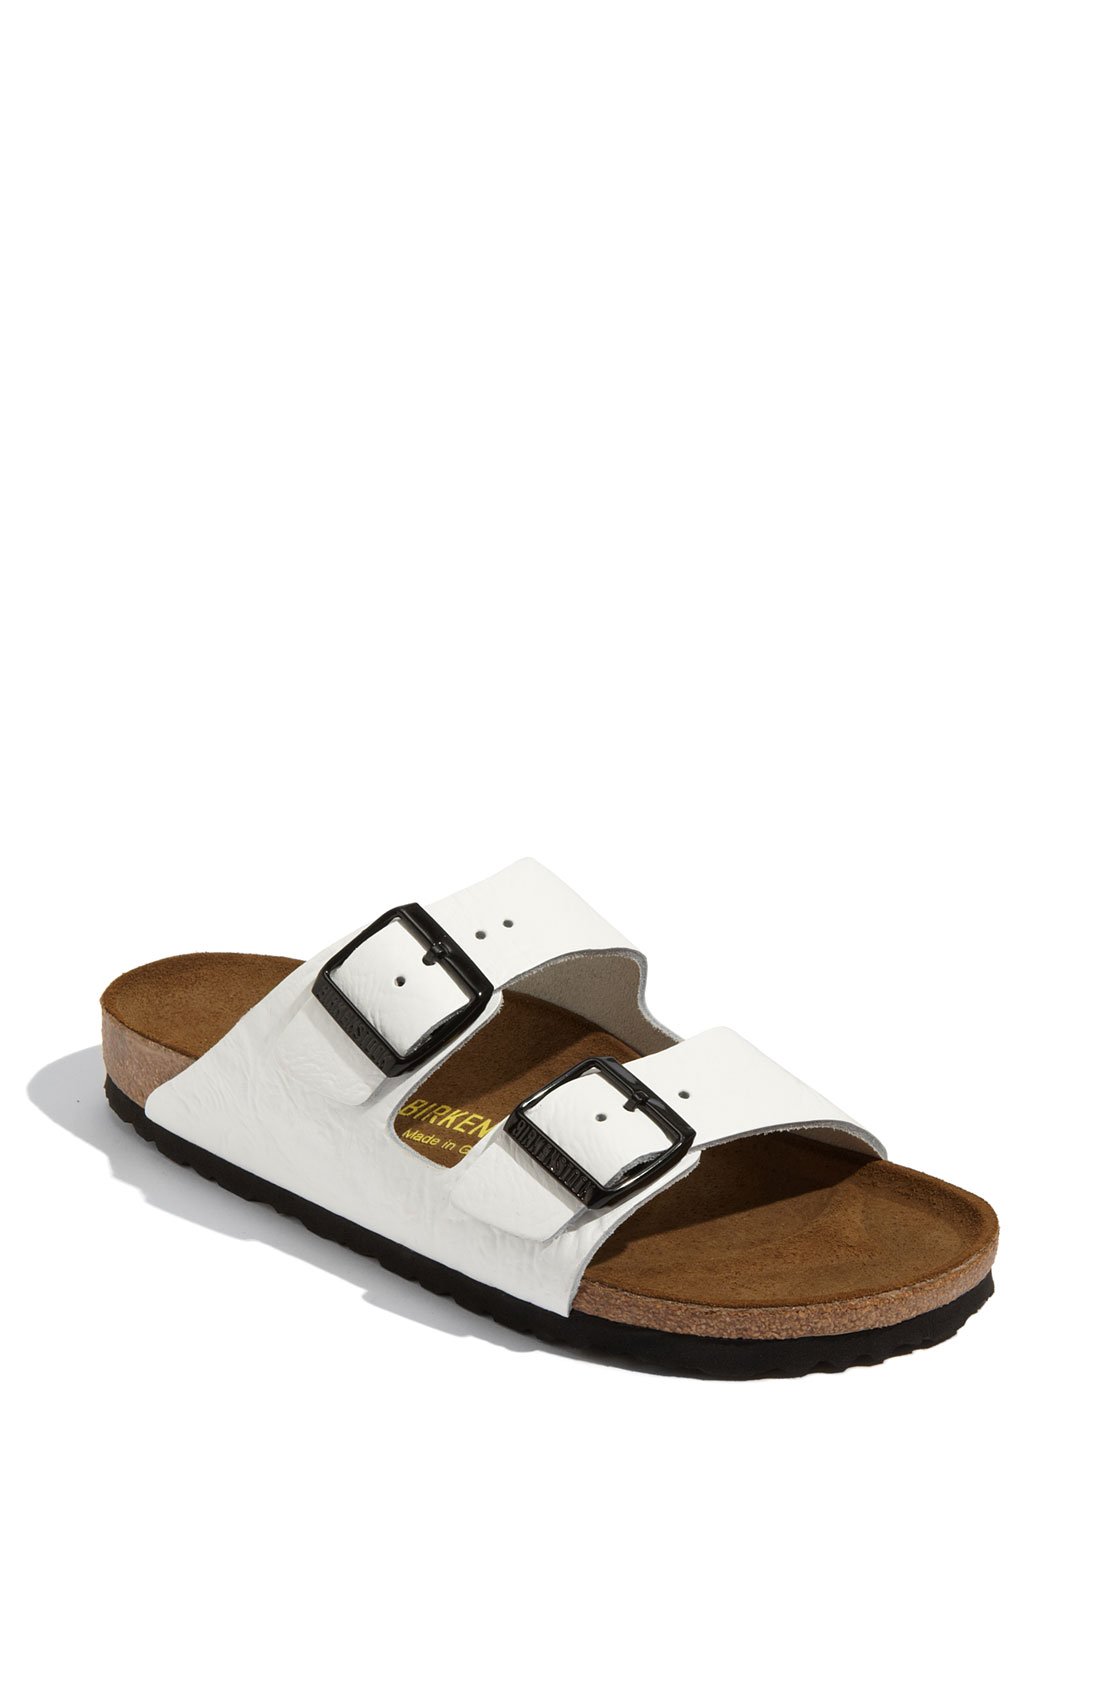 Beautiful Birkenstock Sandals With Socks Birkenstock Arizona Sandals